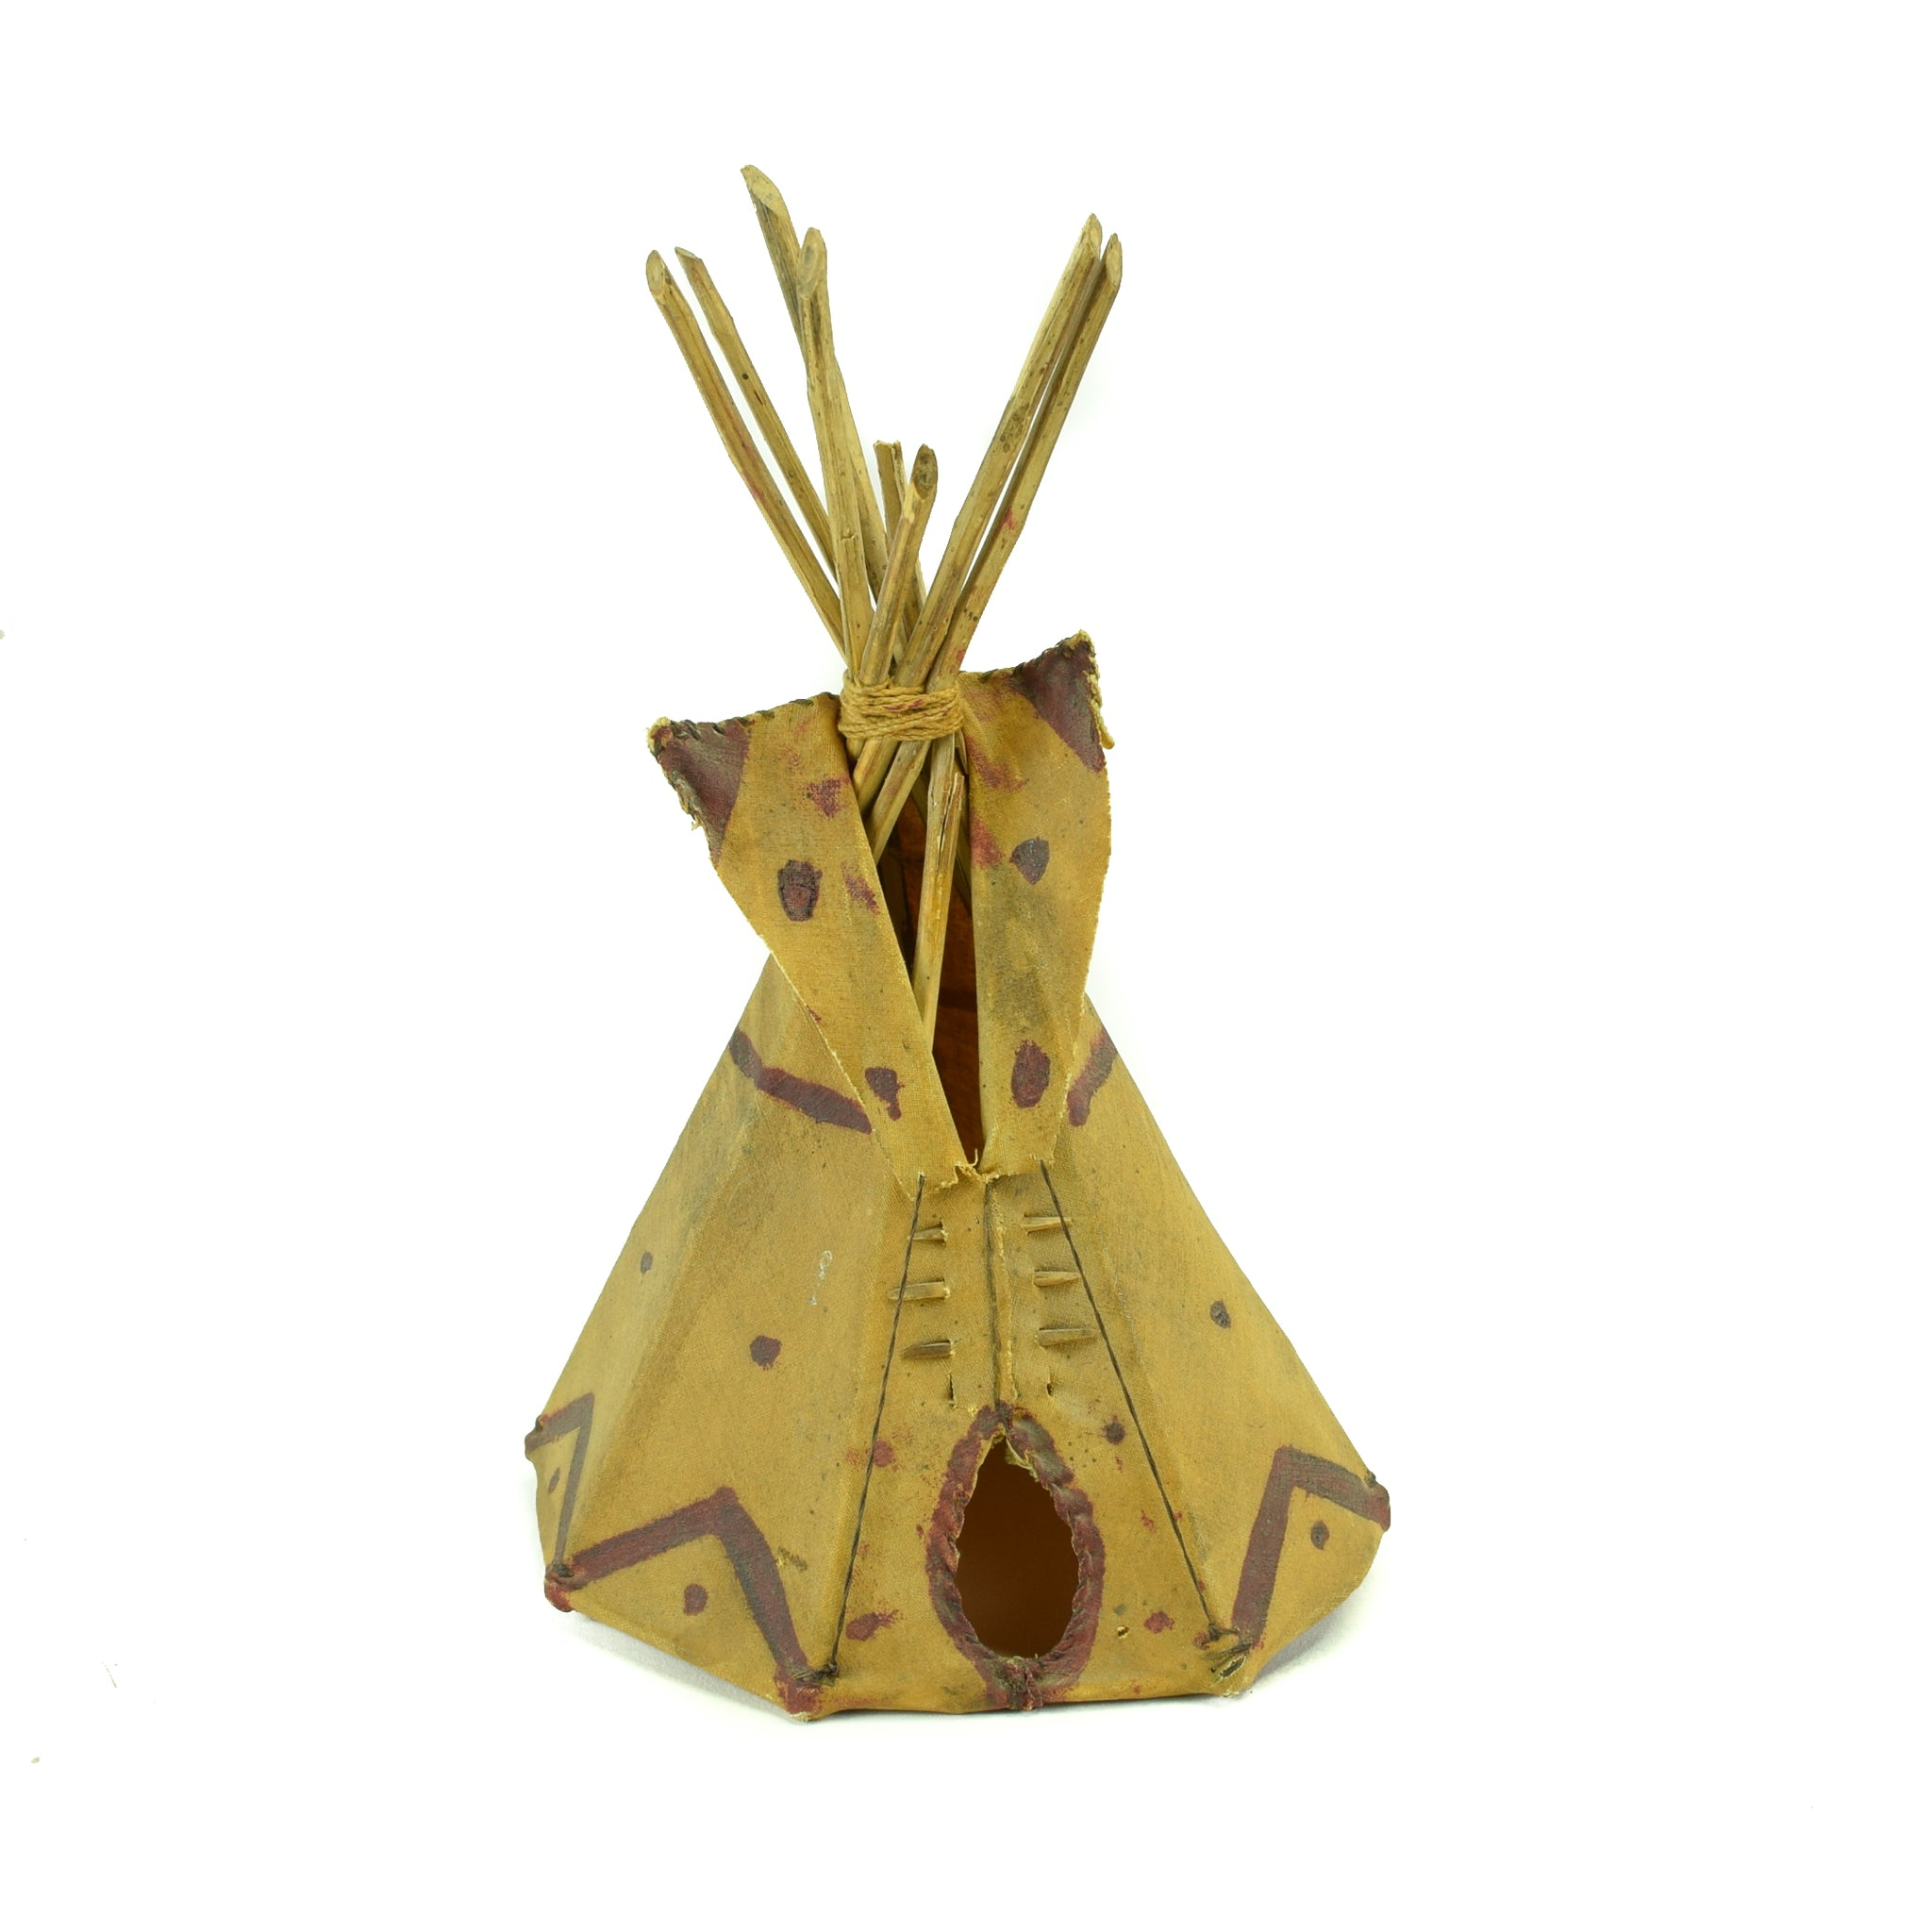 Sioux american indian other, child's, sioux, teepees